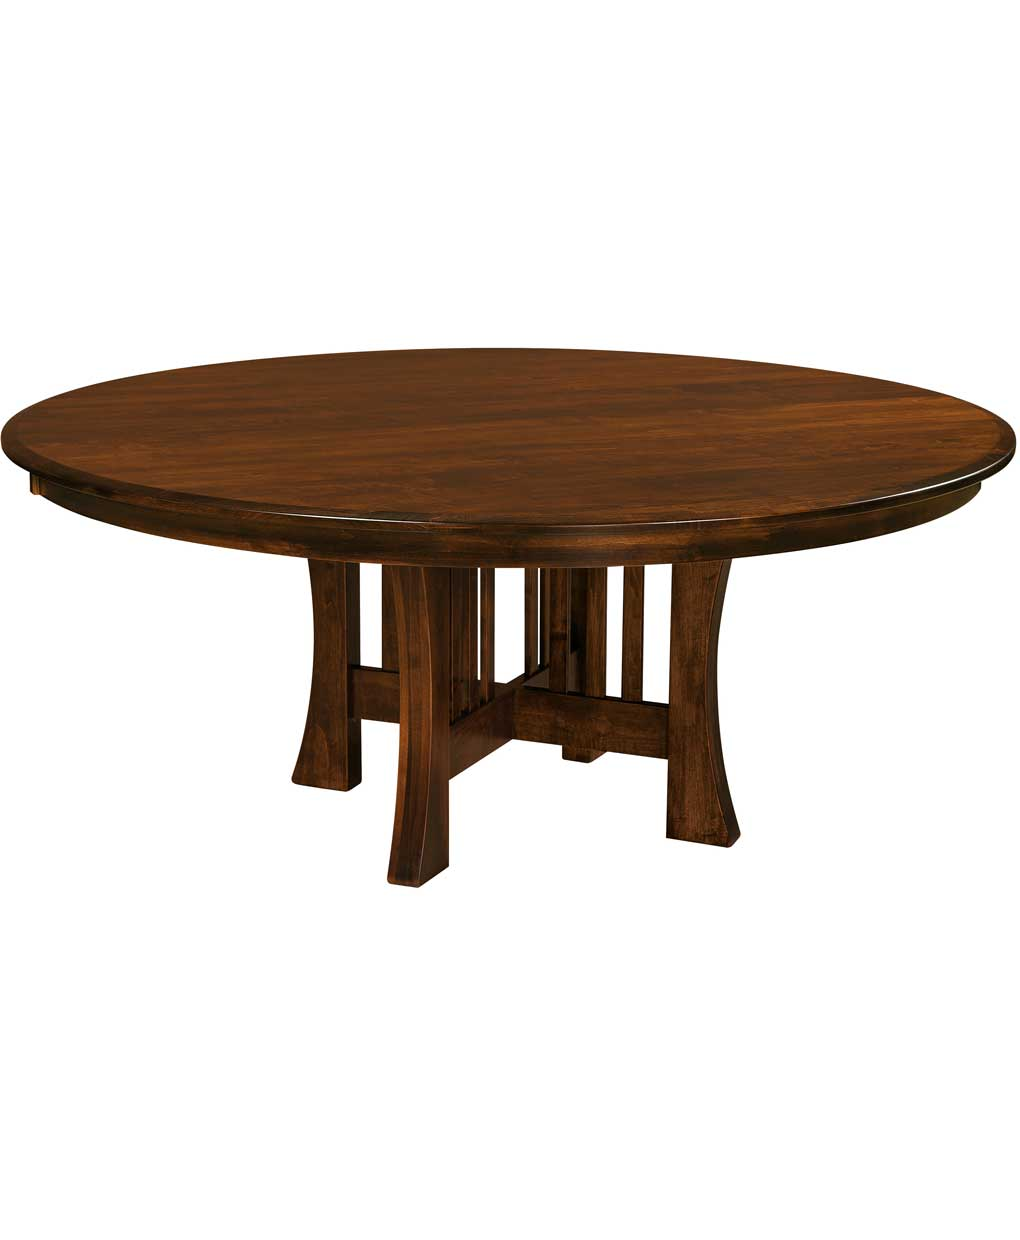 arts and crafts dining table amish direct furniture. Black Bedroom Furniture Sets. Home Design Ideas